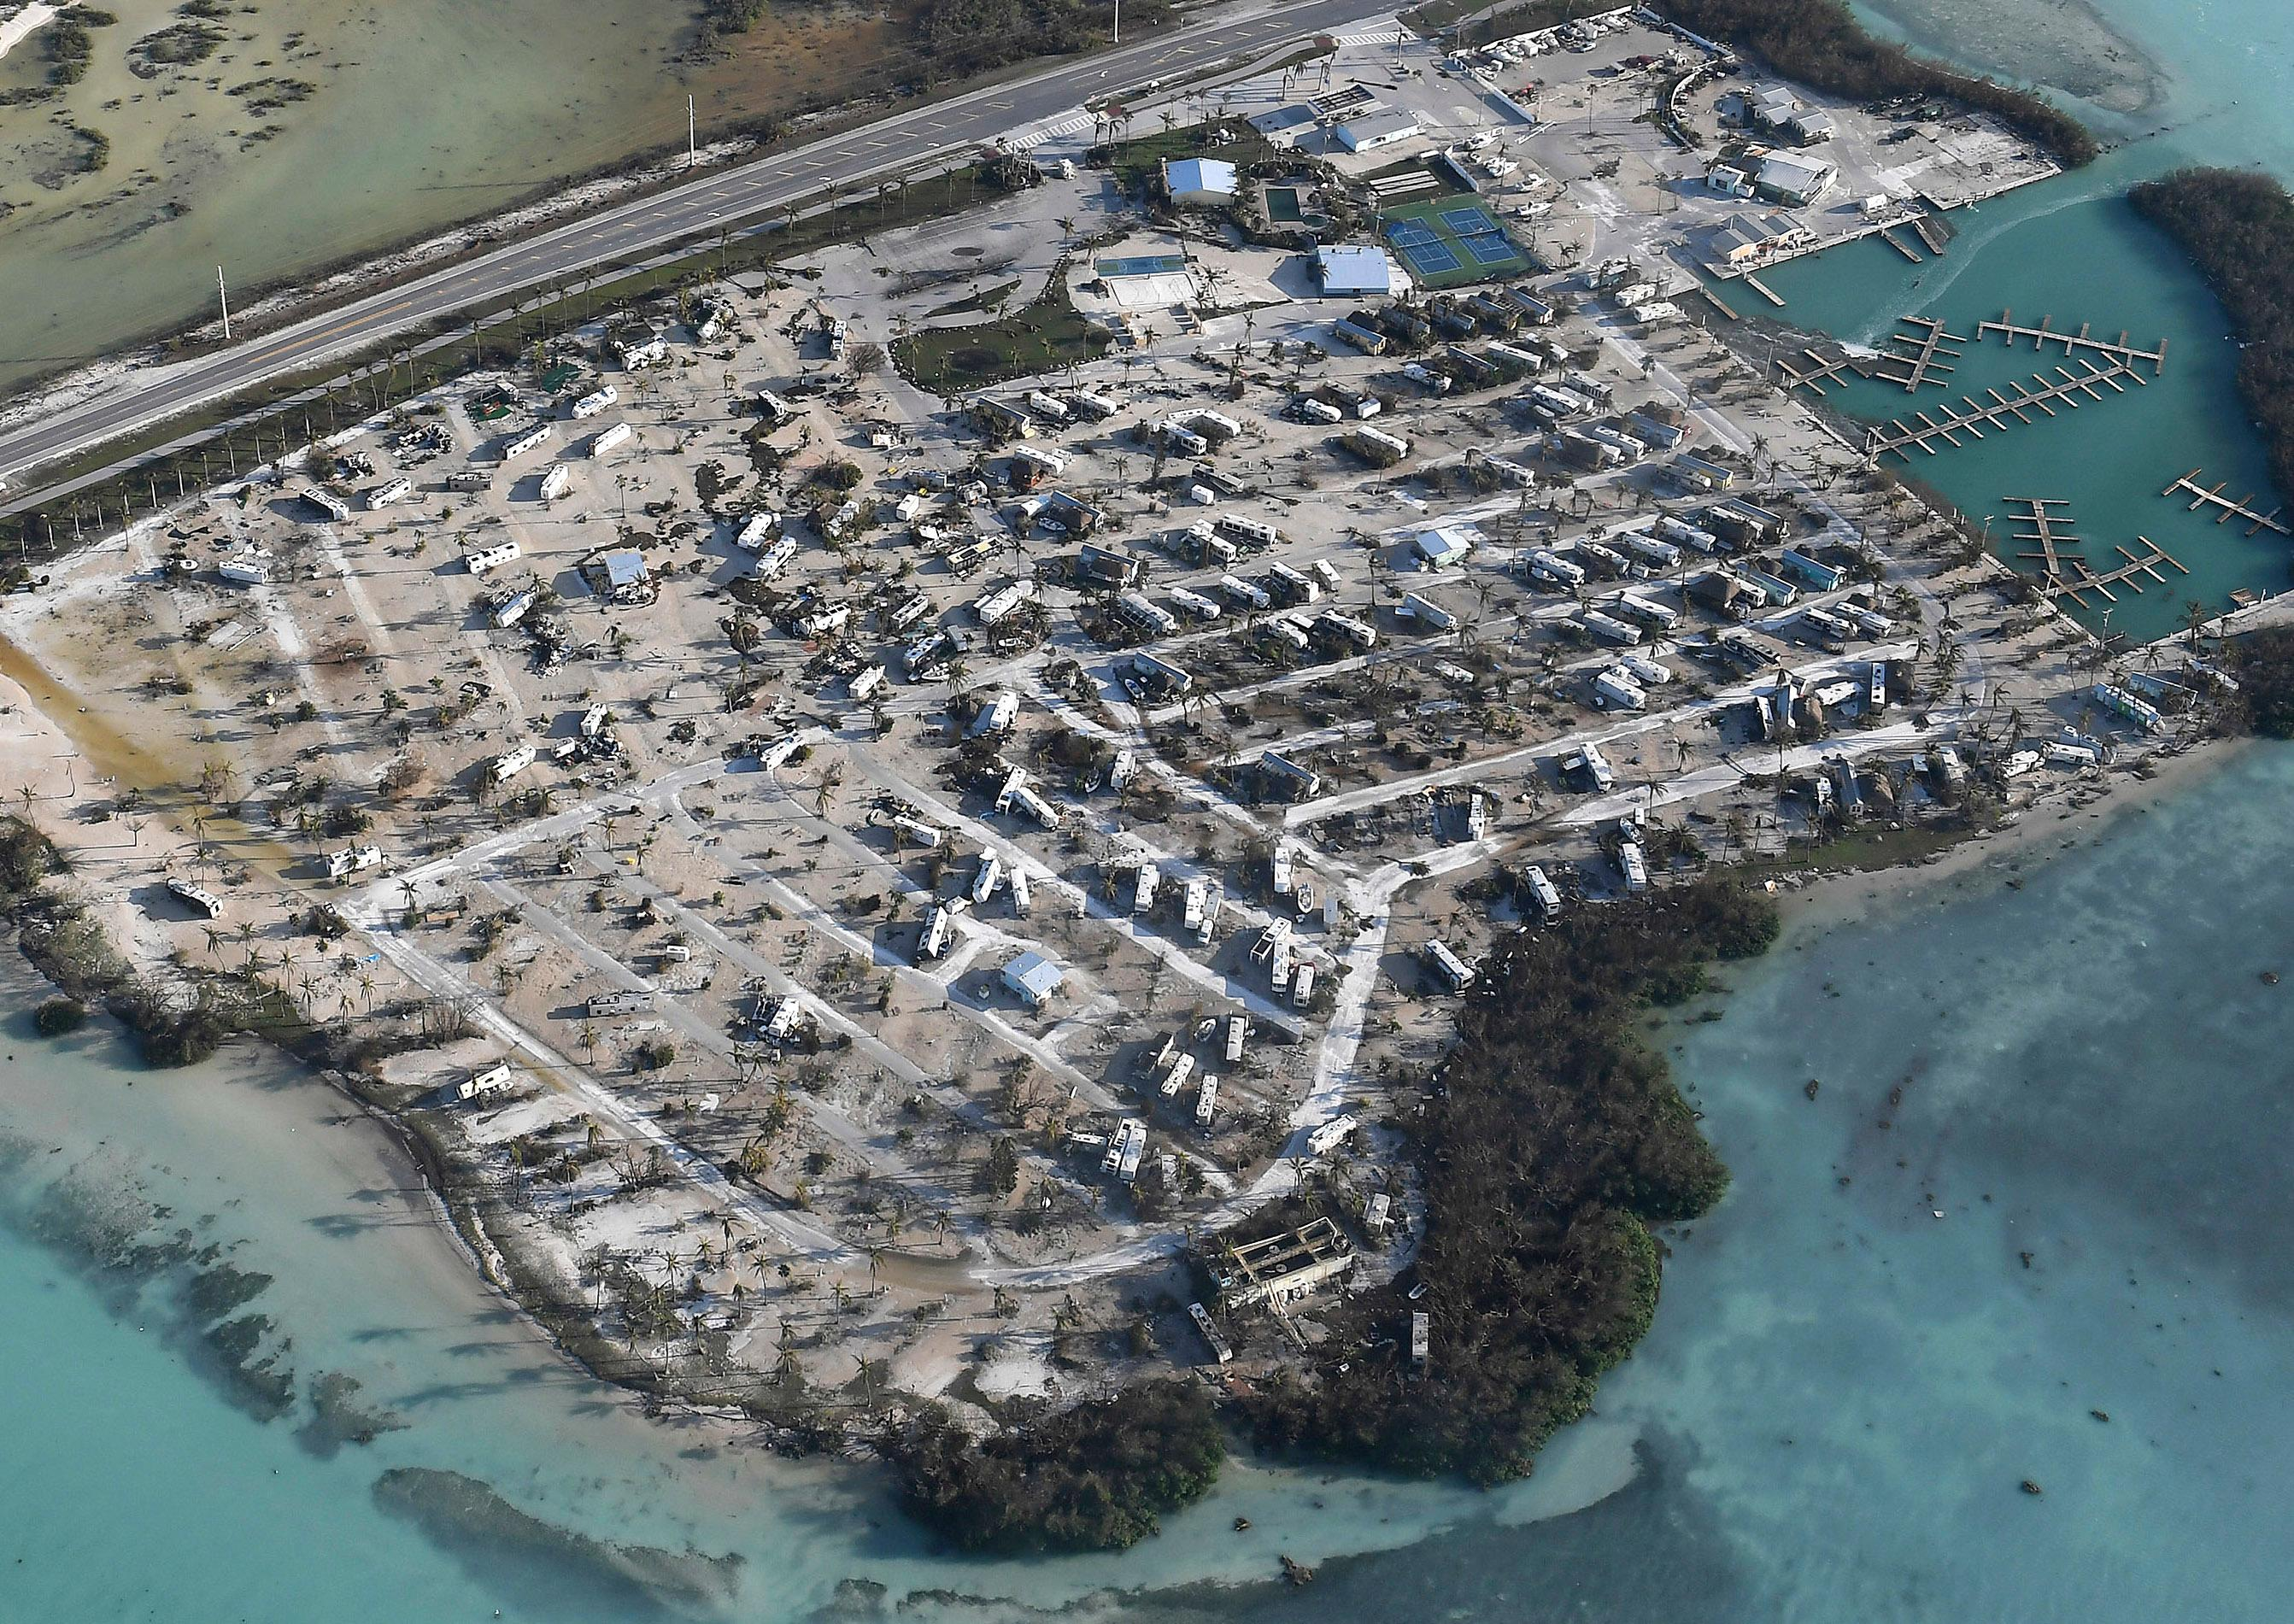 Overturned trailer homes are shown in the aftermath of Hurricane Irma, Monday, Sept. 11, 2017, in the Florida Keys. (Matt McClain/The Washington Post via AP, Pool)